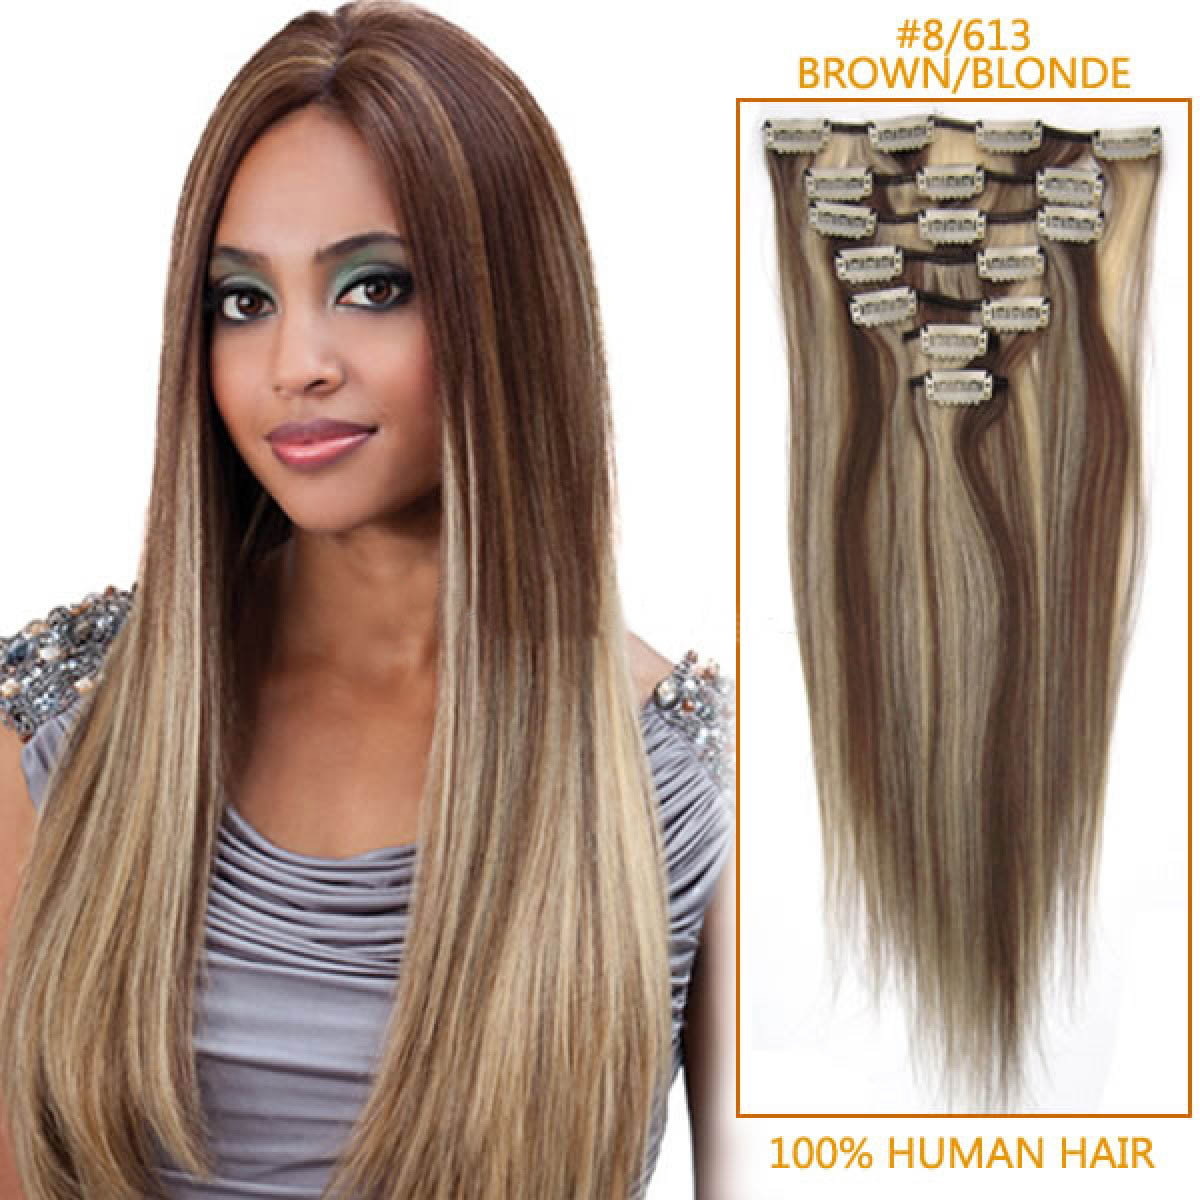 20 inch clip on hair extensions trendy hairstyles in the usa 20 inch clip on hair extensions pmusecretfo Image collections